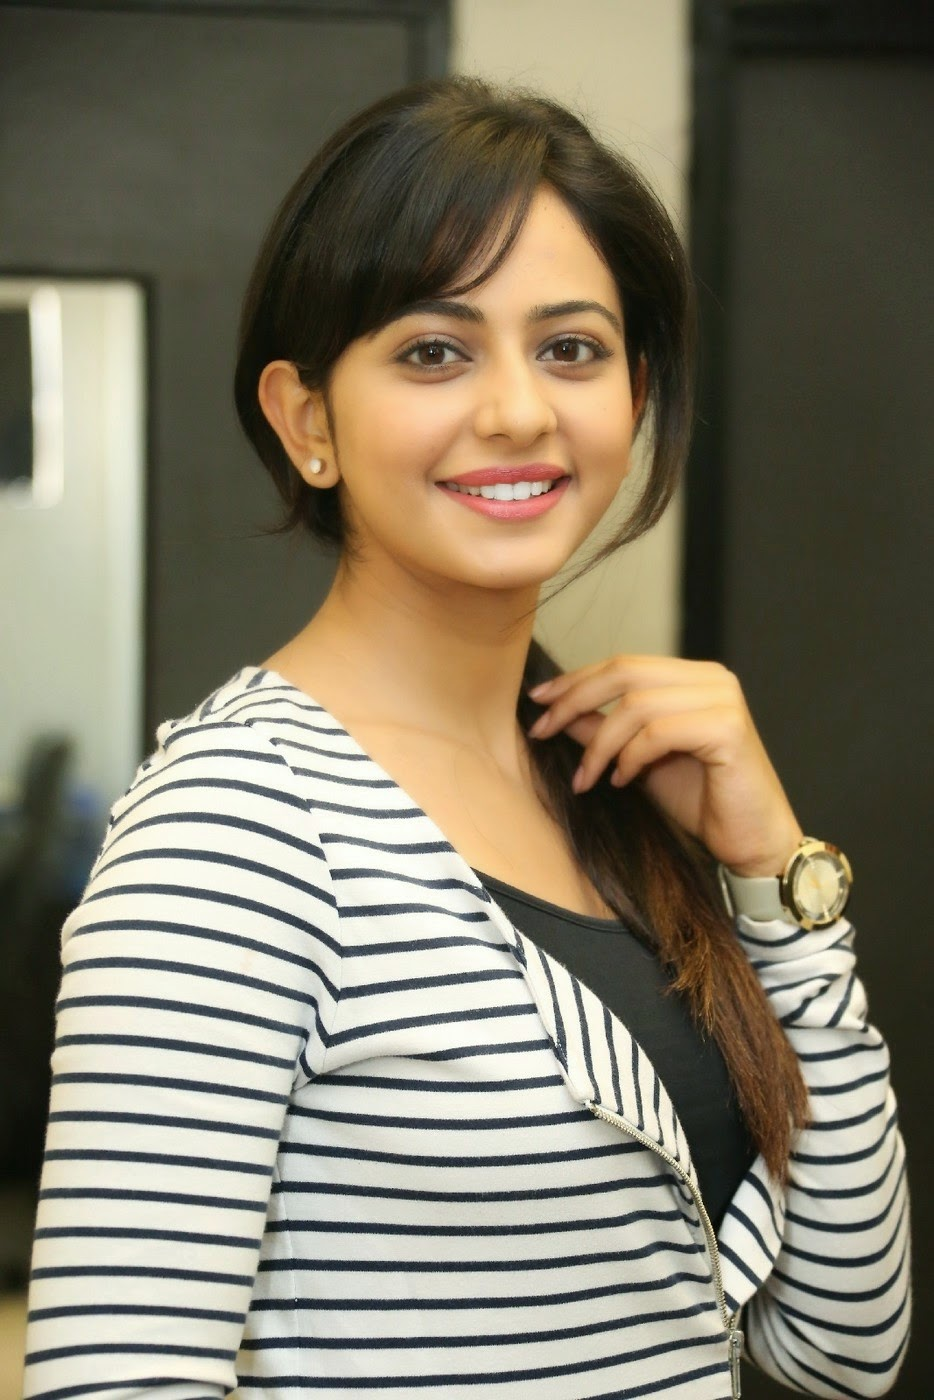 hd wallpapers: rakul preet singh hot hd images and pictures gallery